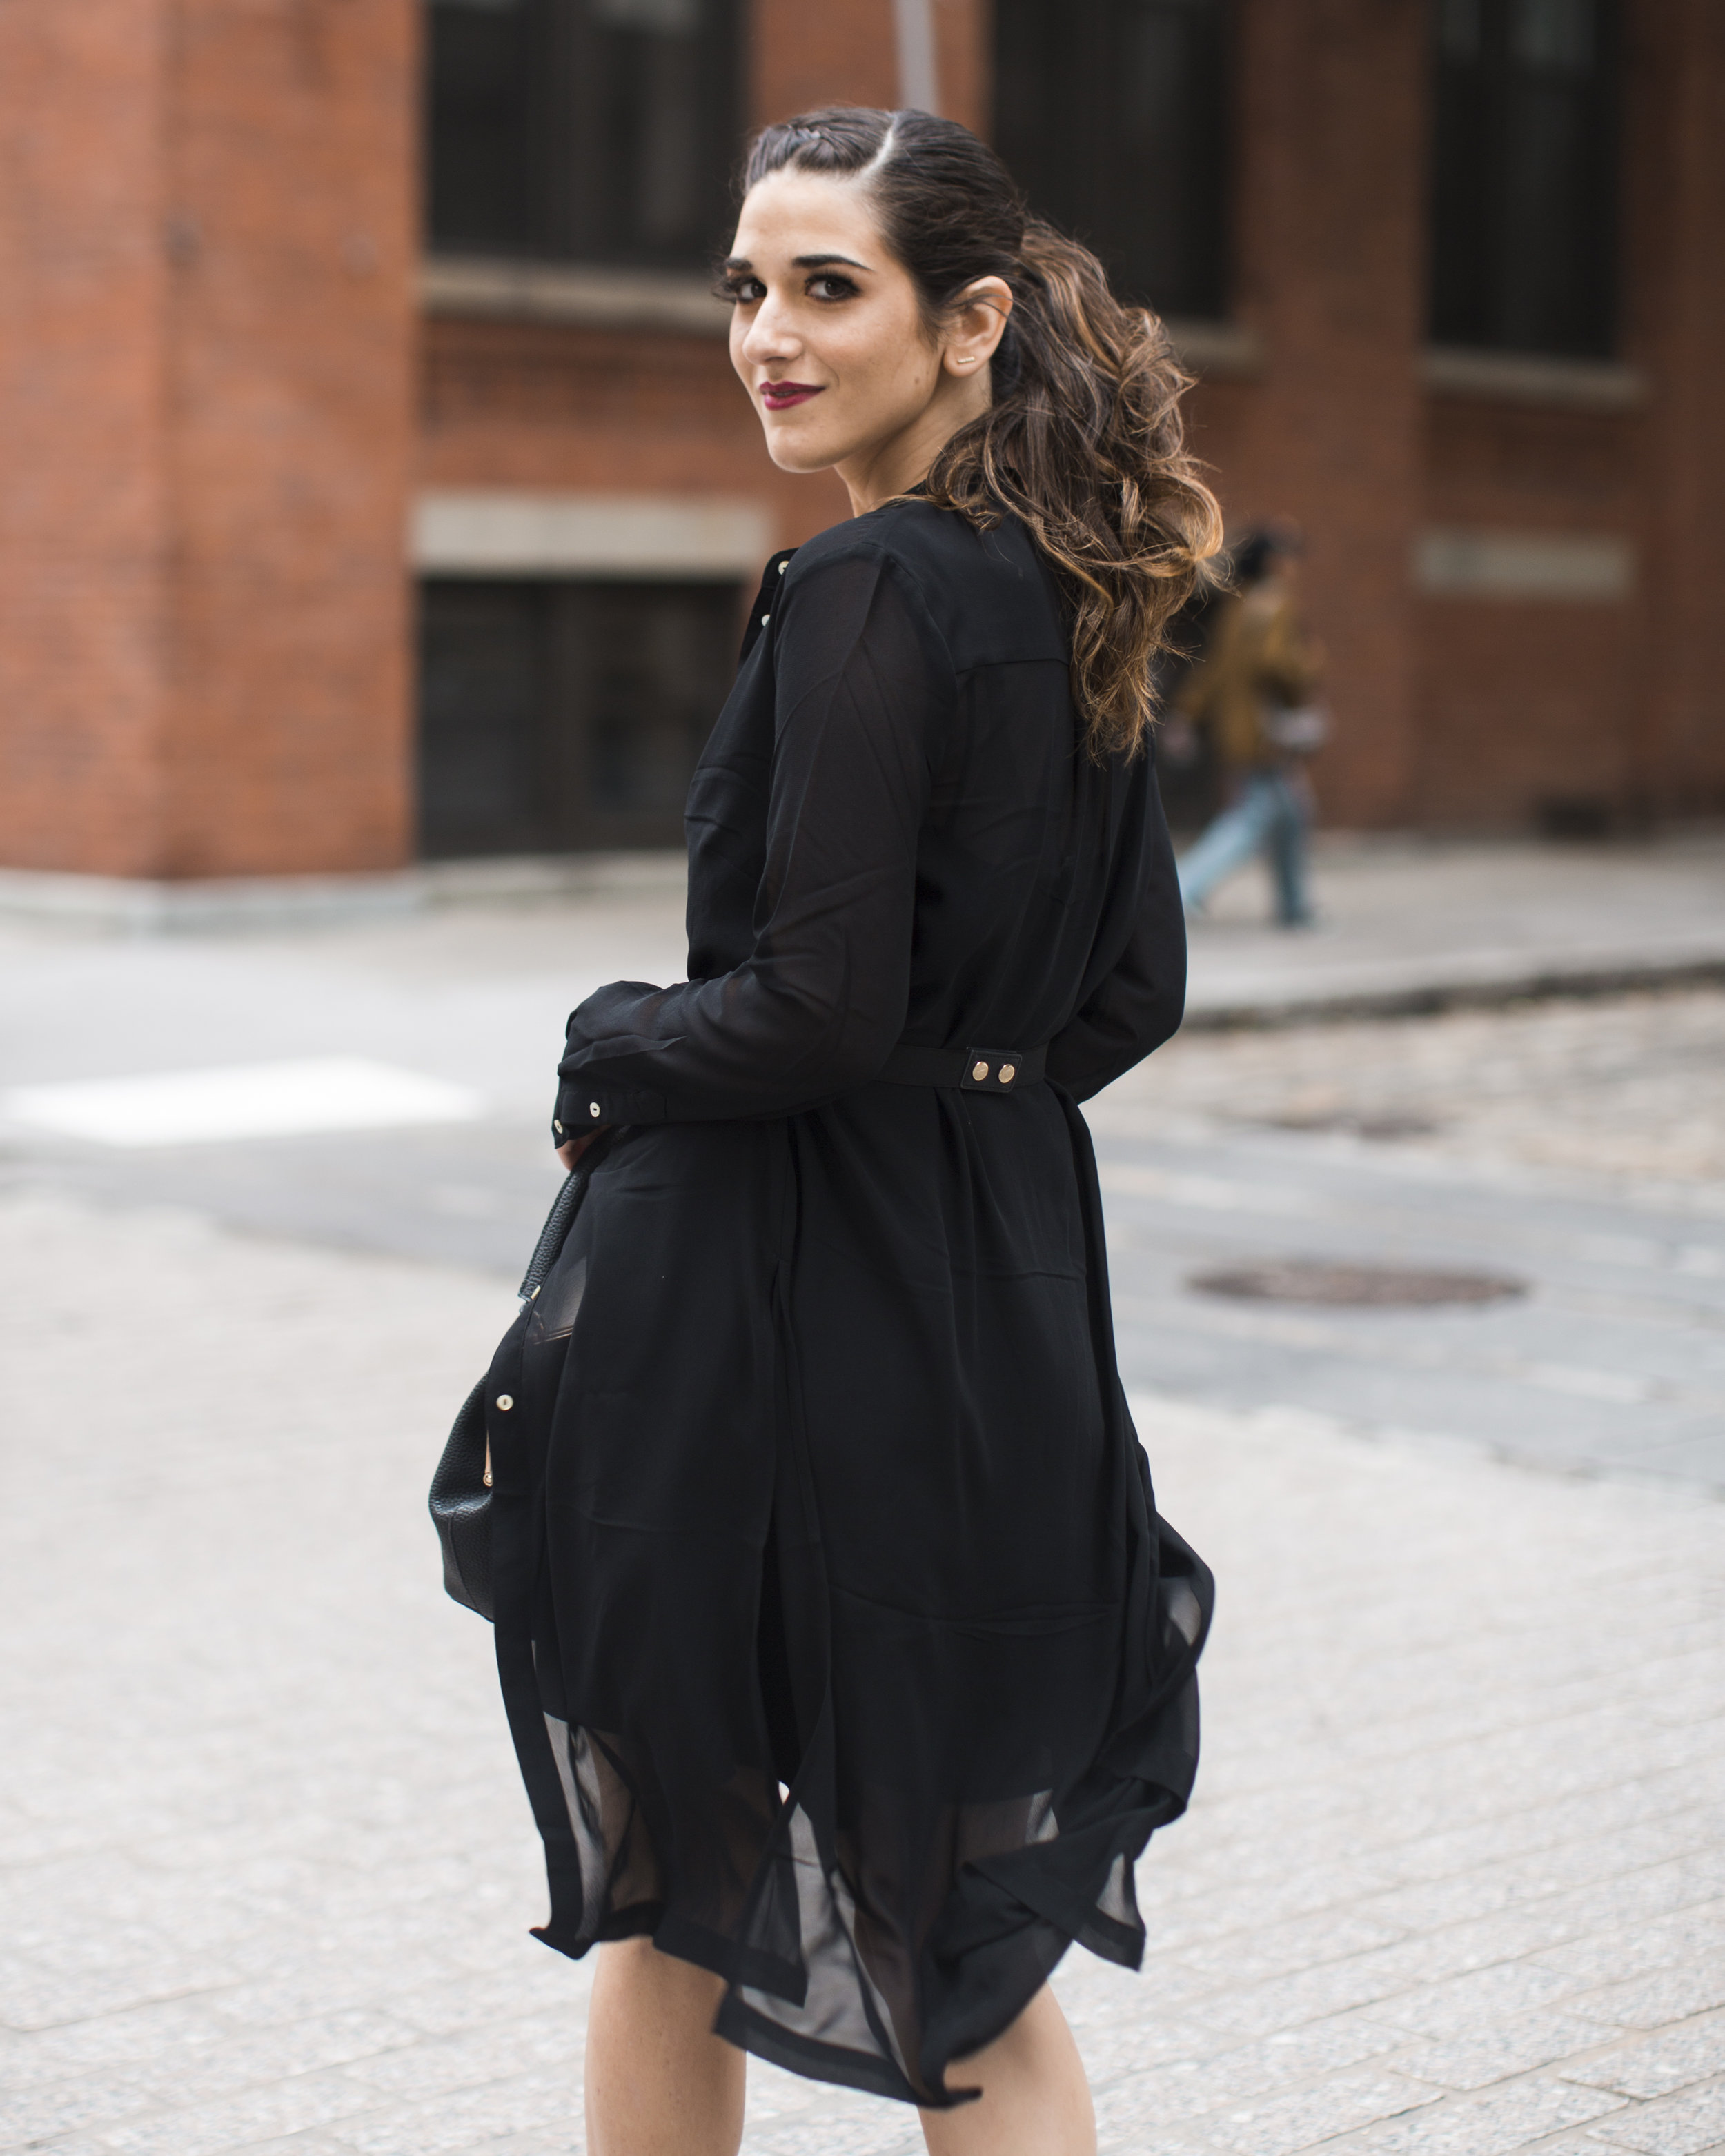 Gold Ribbon Pendant Leibish and Co. Diamonds Louboutins & Love Fashion Blog Esther Santer NYC Street Style Blogger Monochrome Mules Necklace Braid Hair Girl Women Shirt Dress All Black Red Lipstick Outfit Trendy Inspo OOTD Jewelry Bag Wear Inspo Shop.jpg